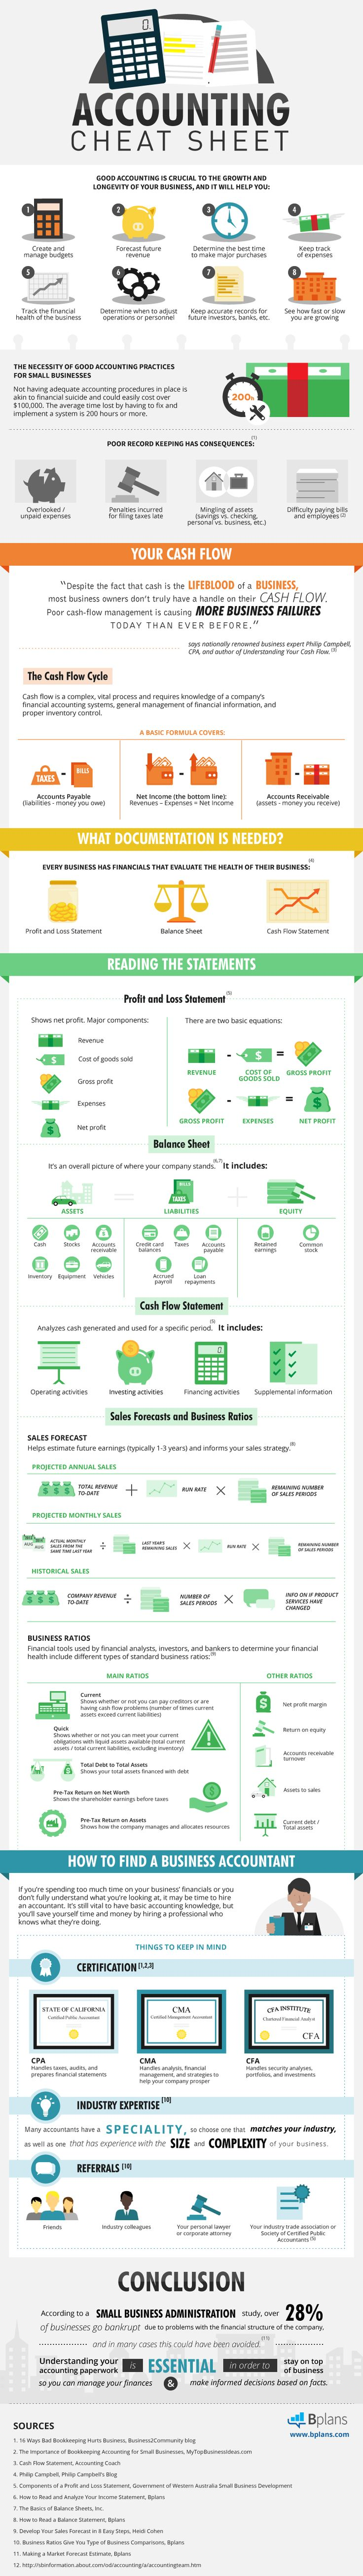 Accounting-Basics-Cheat-Sheet